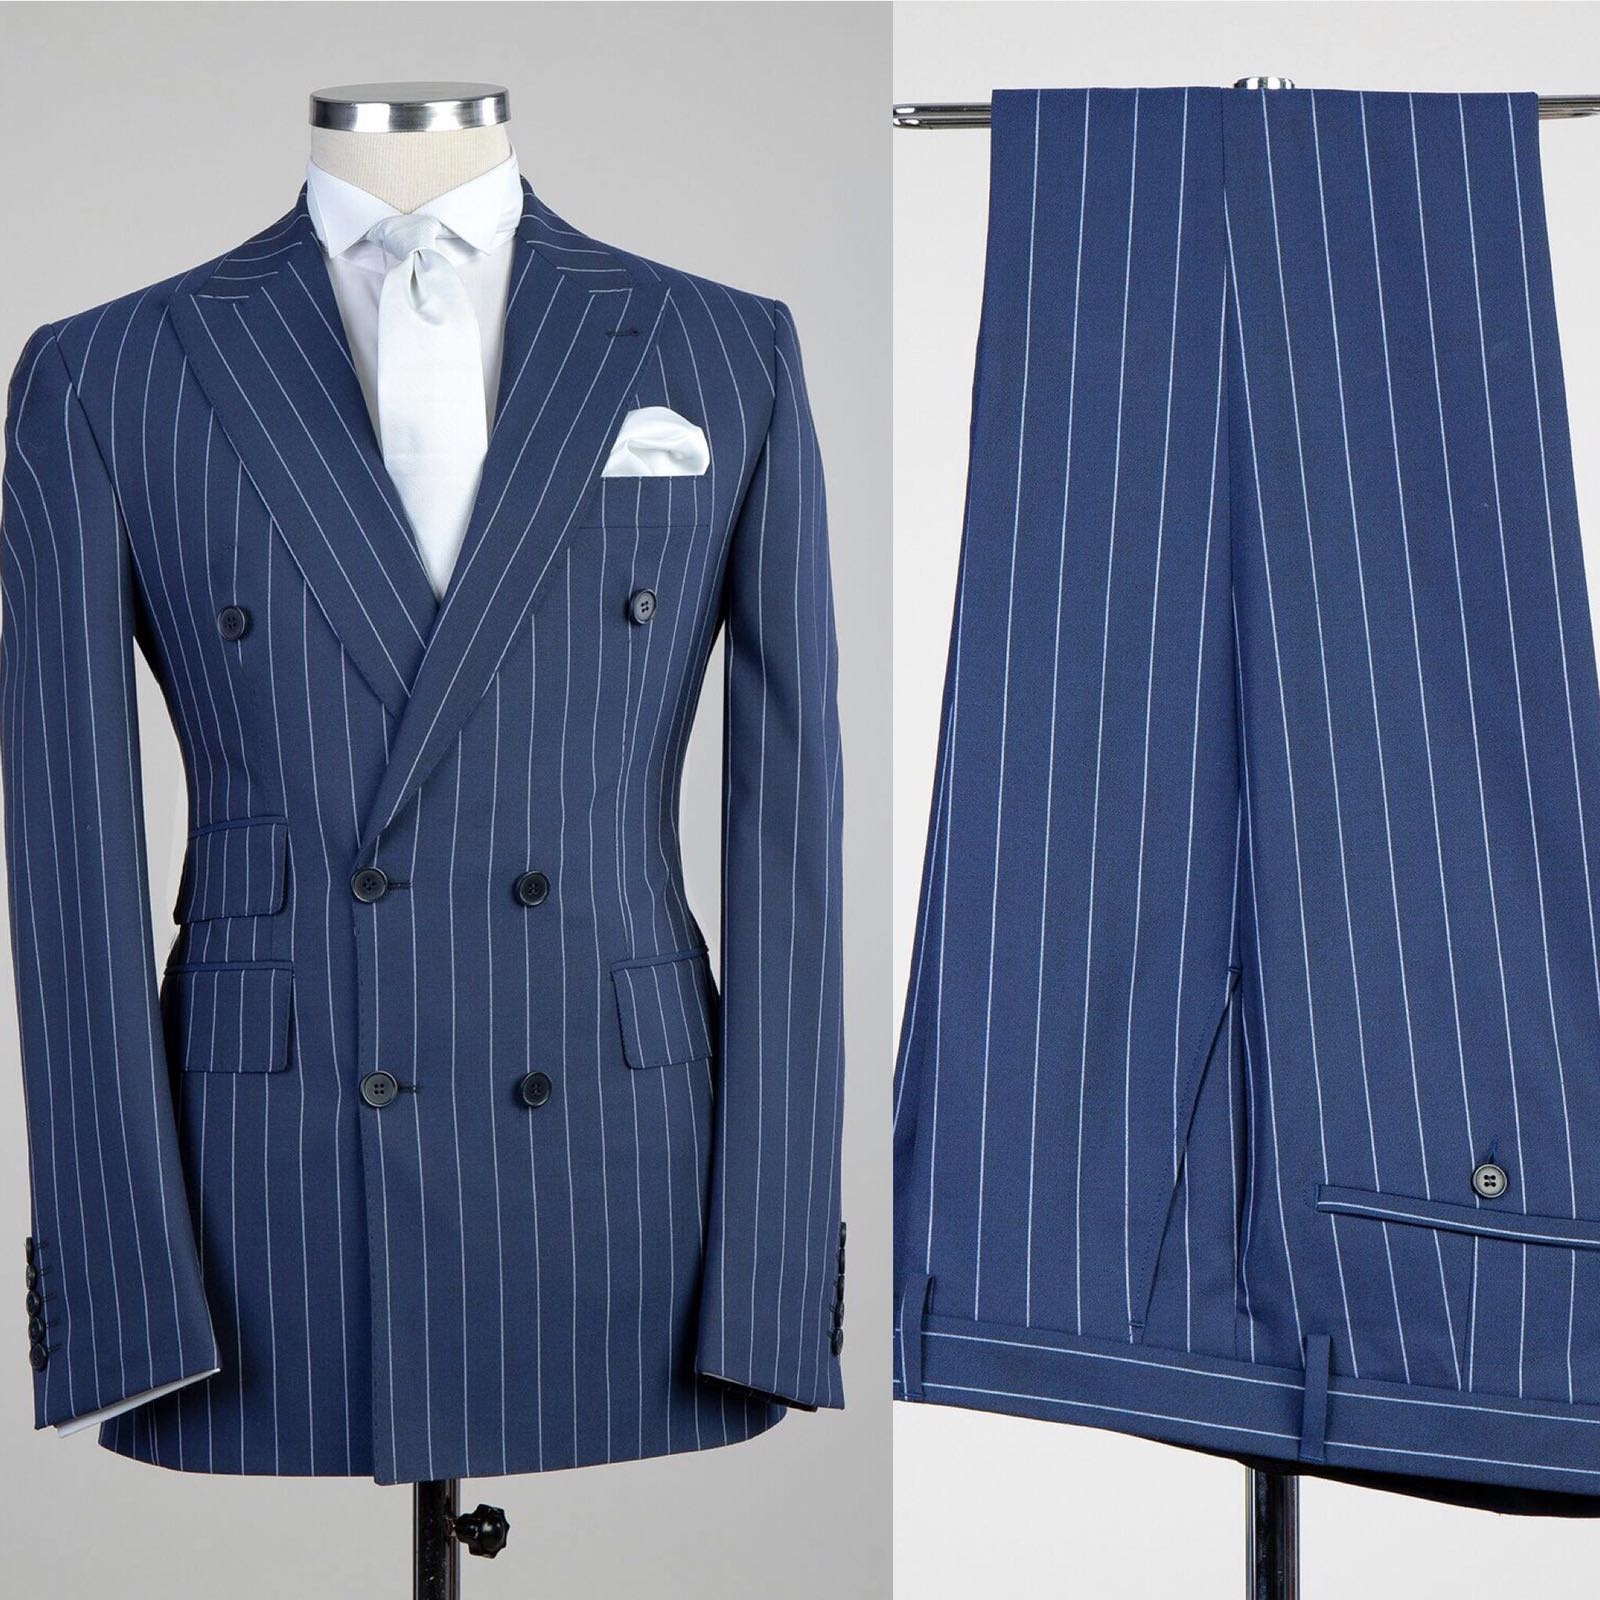 hot sale online great discount for authentic quality Fashuné Classic Navy Blue Pinstripe Suit